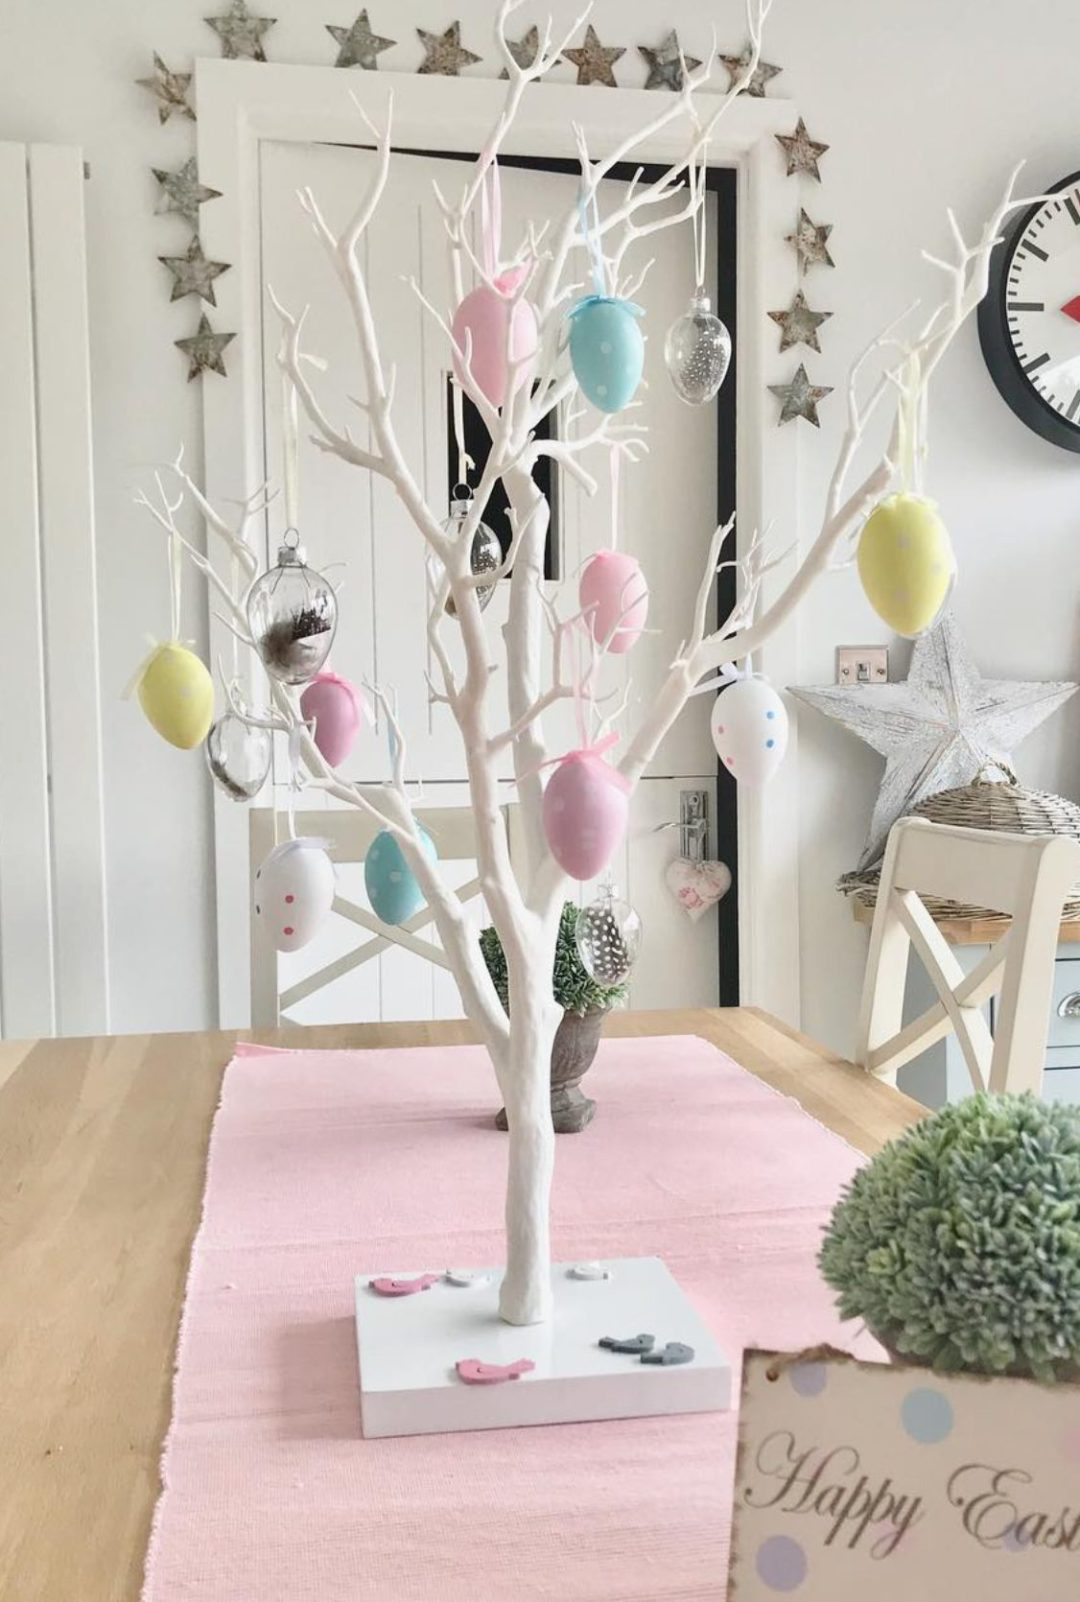 White Easter tree ideas with pastel decorations